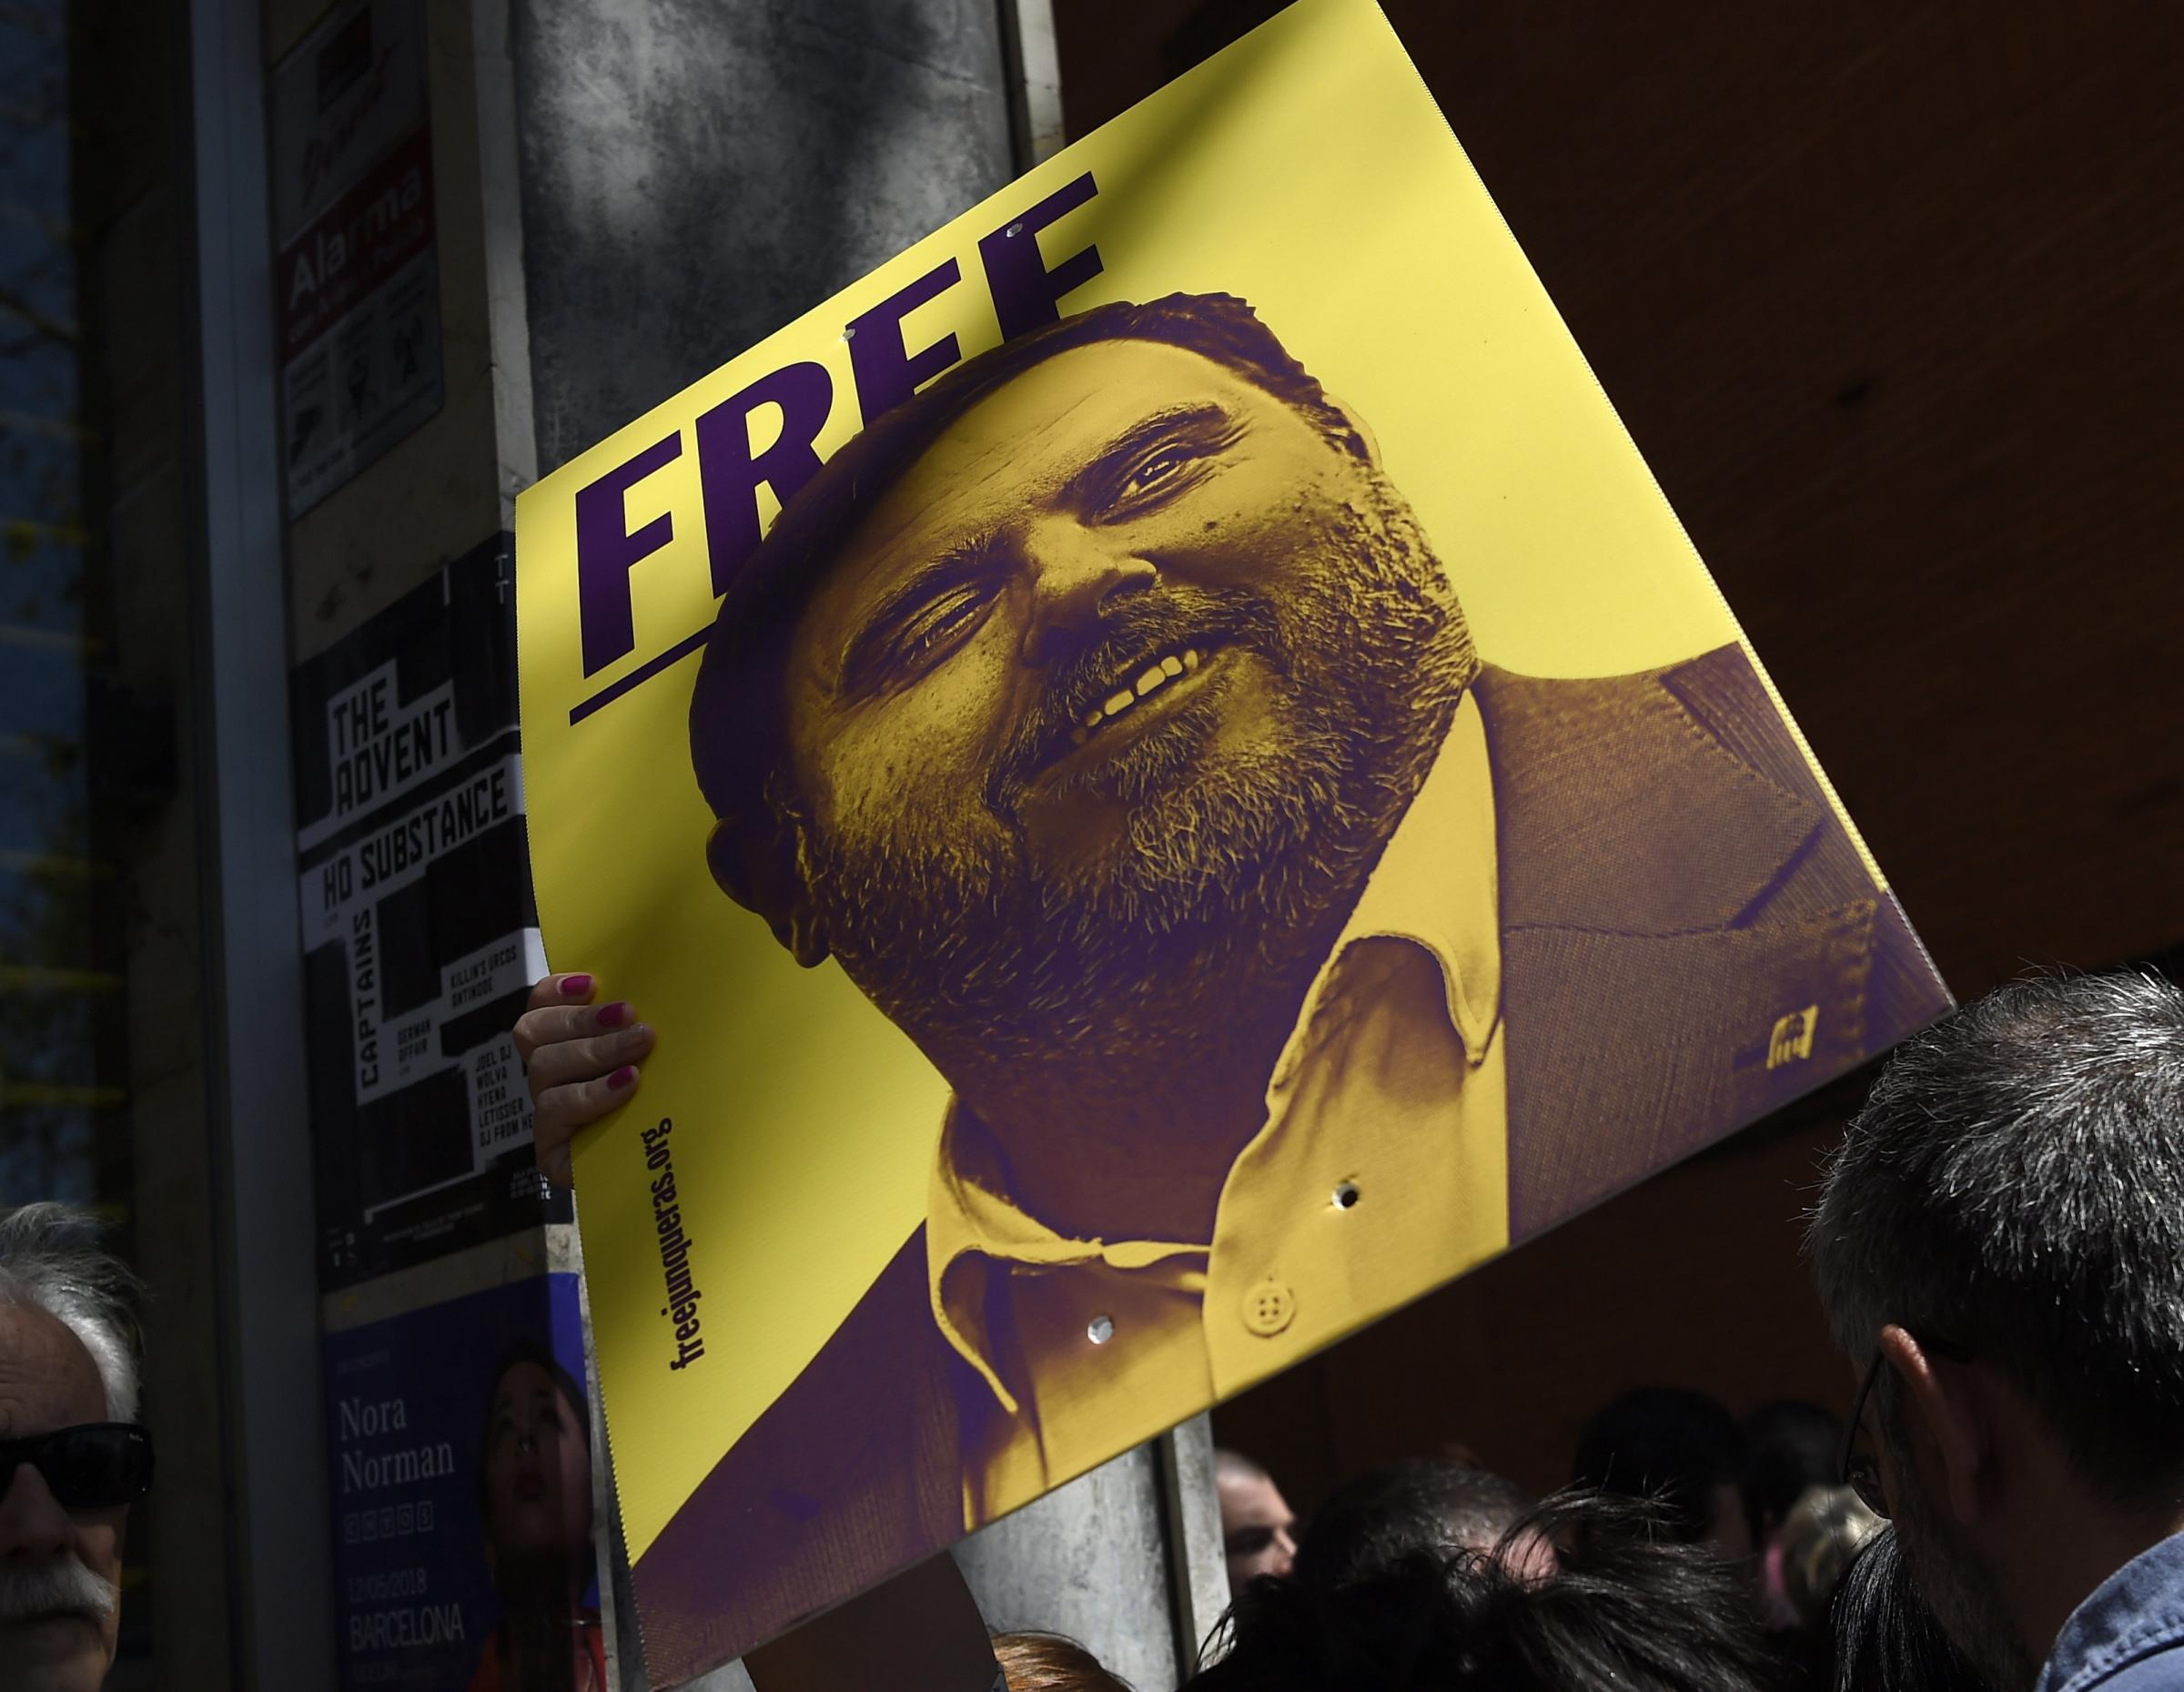 100 years of jail time for pro-independence Catalan leaders